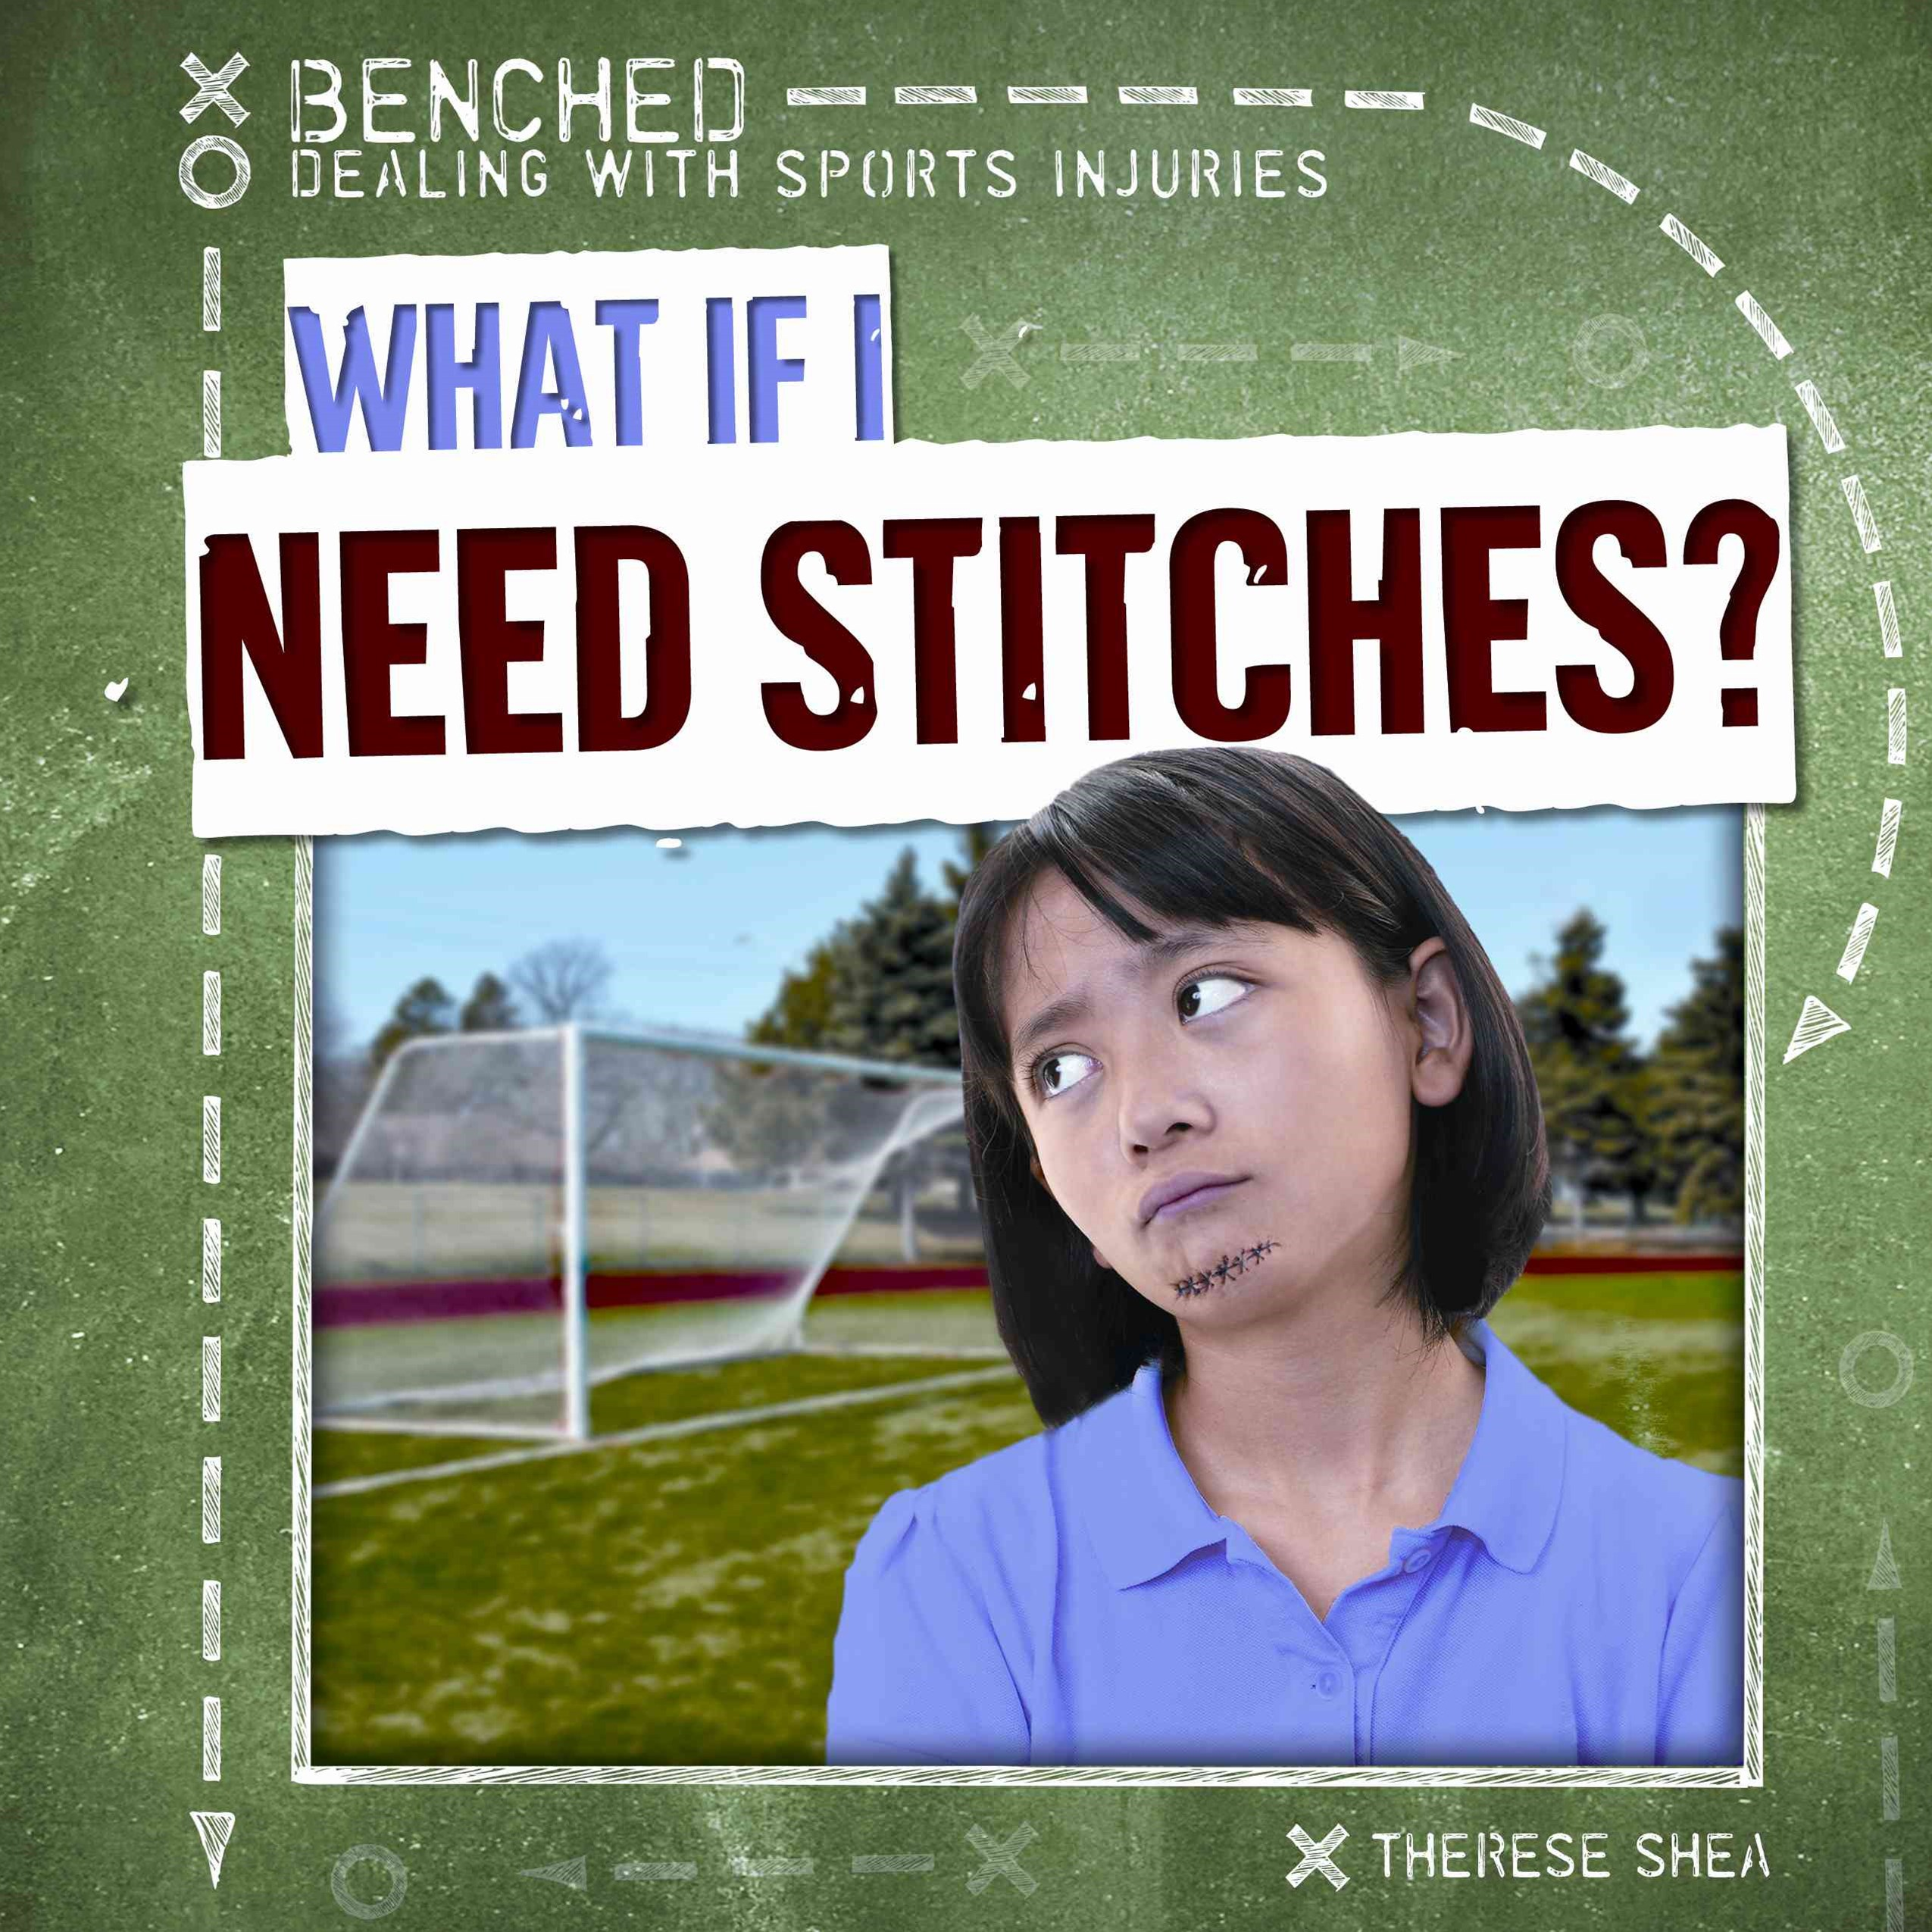 What If I Need Stitches?